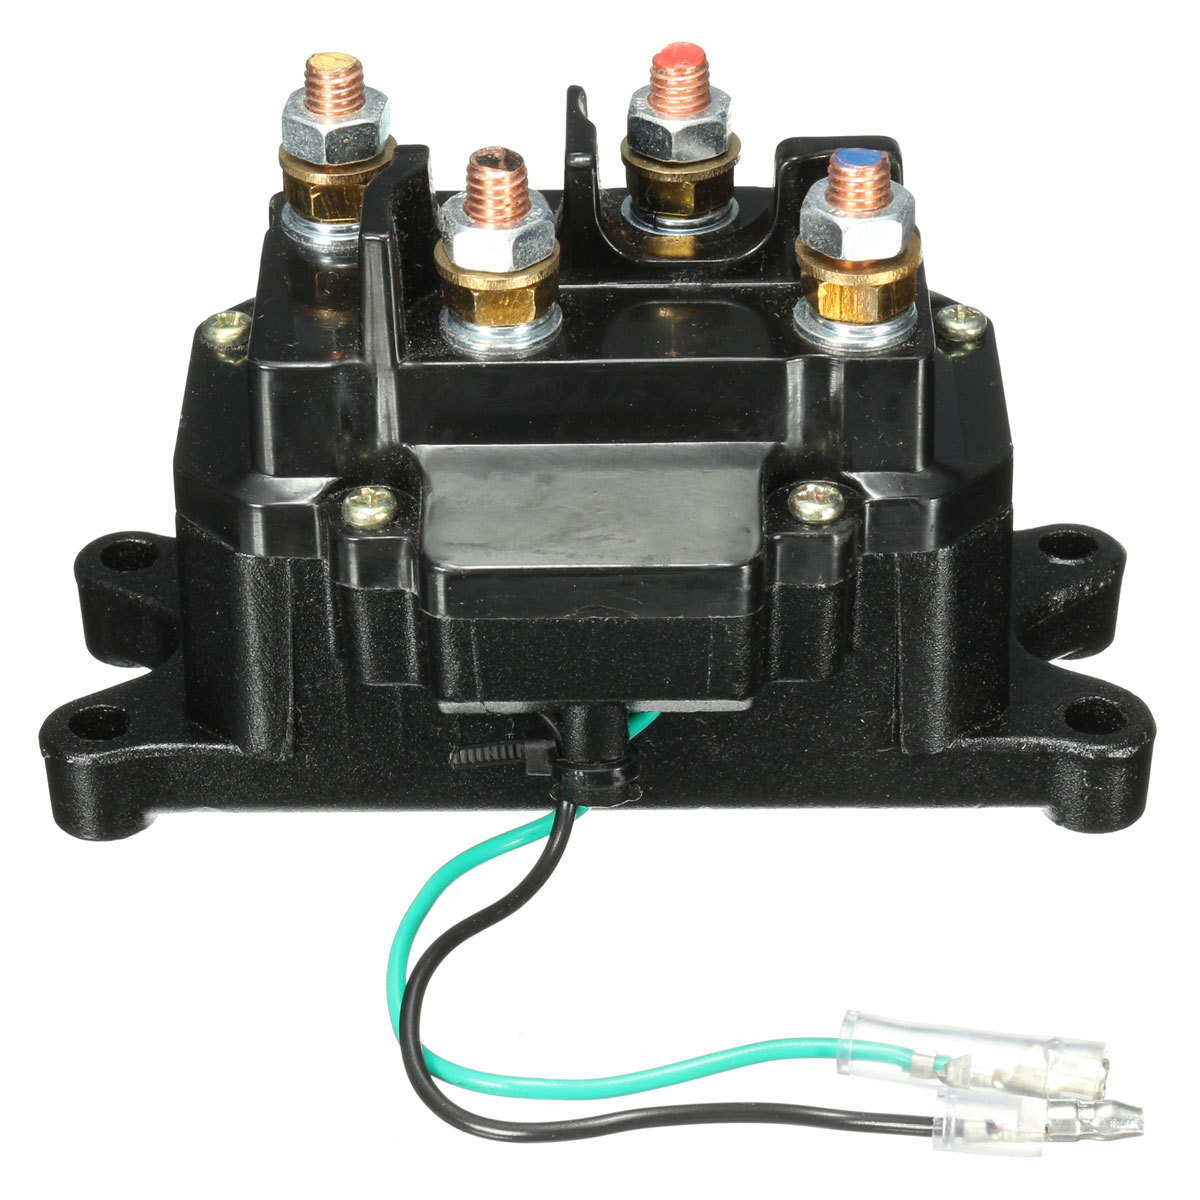 12v Solenoid Relay Contactor Winch Rocker Thumb Switch For Atv Utv on 12v rocker switch wiring